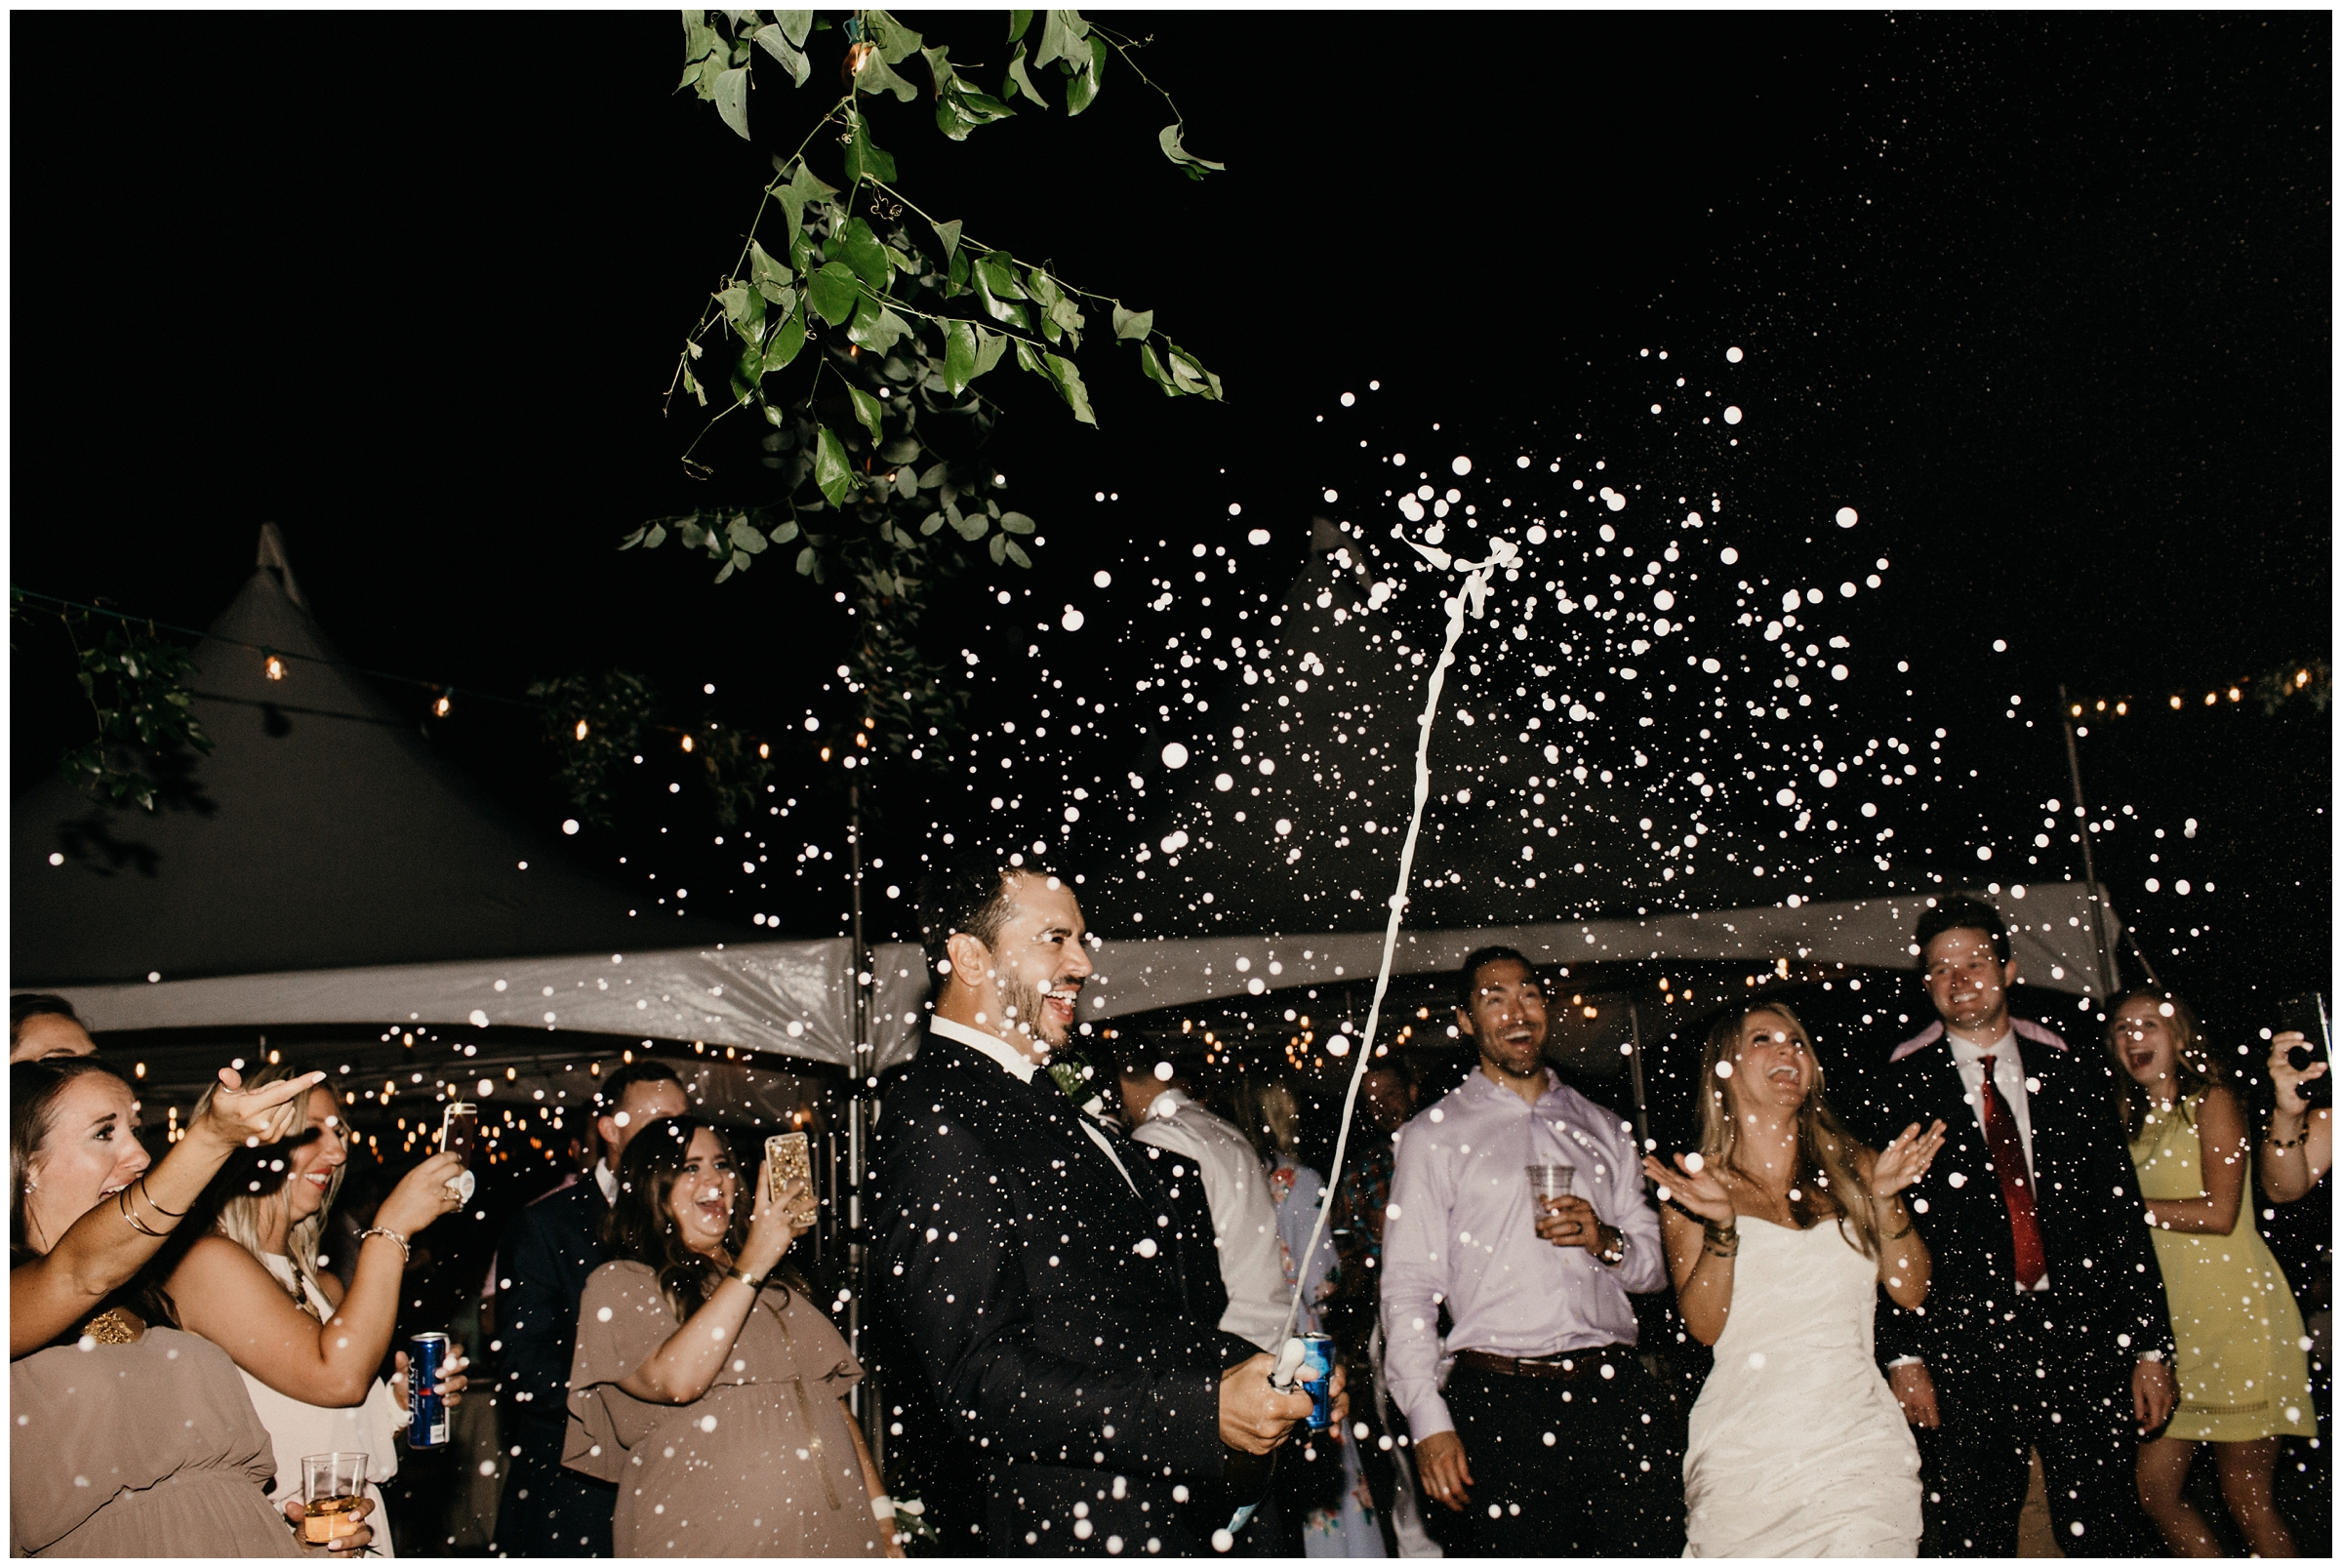 groom popping champagne at wedding reception